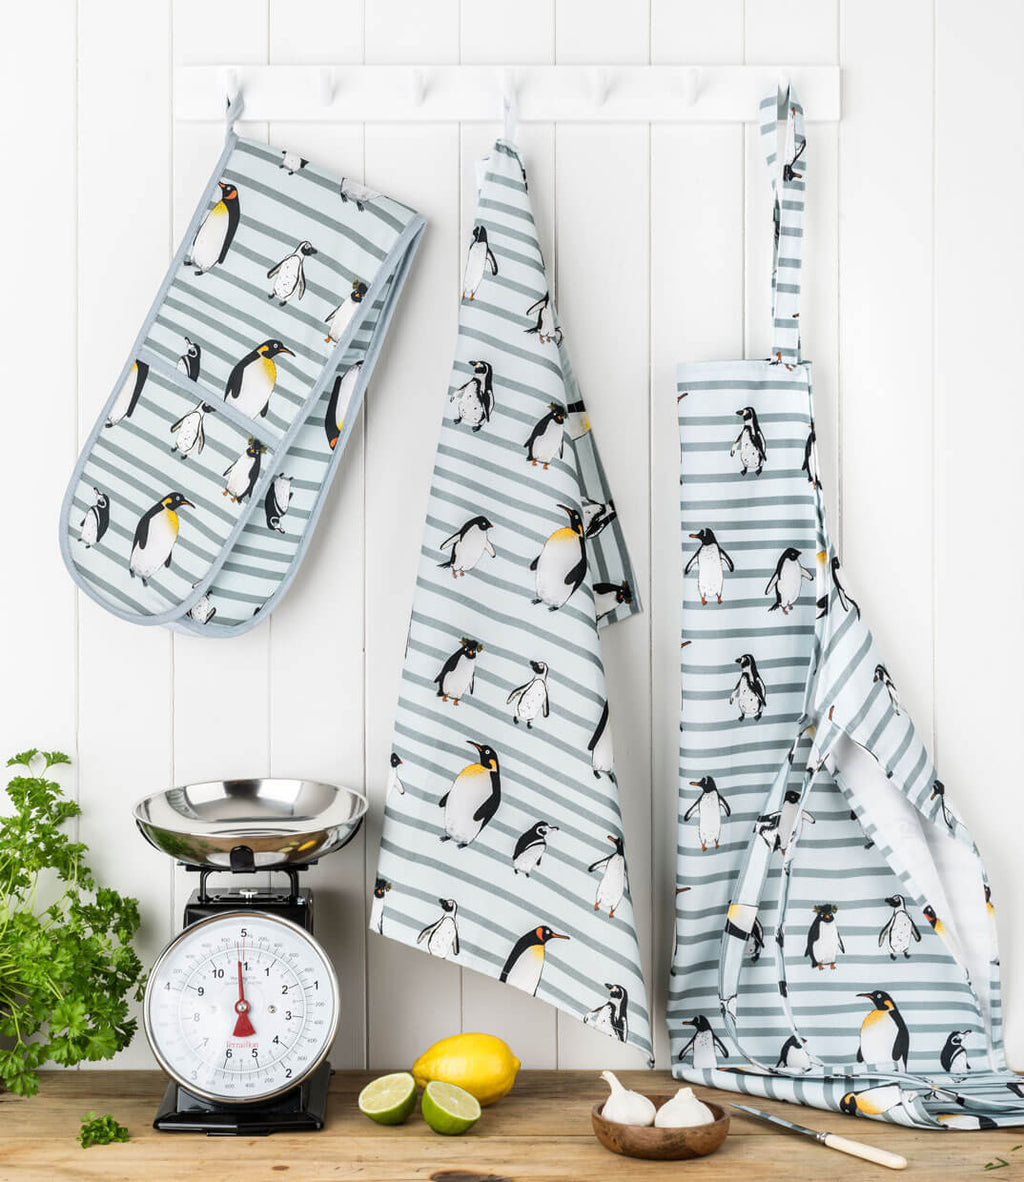 Penguin waddle Oven Gloves